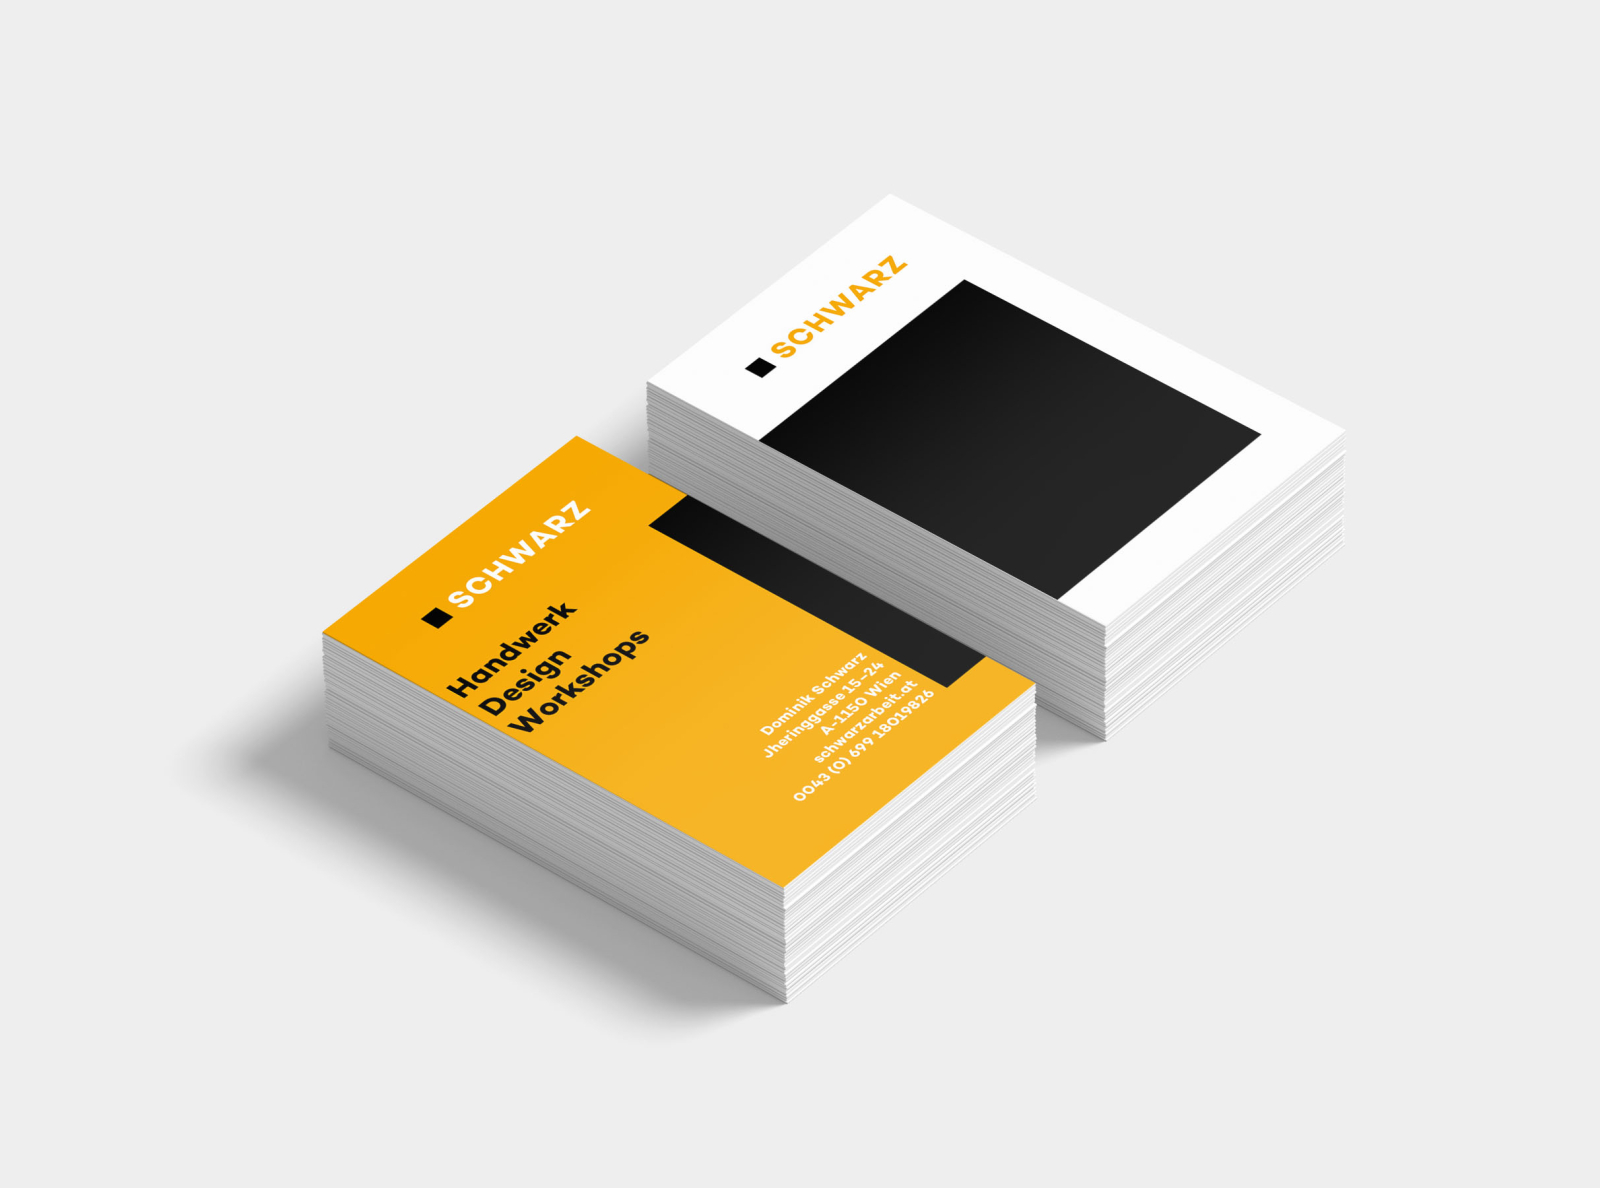 Business Cards For A Carpenter By Lisa Weishäupl On Dribbble